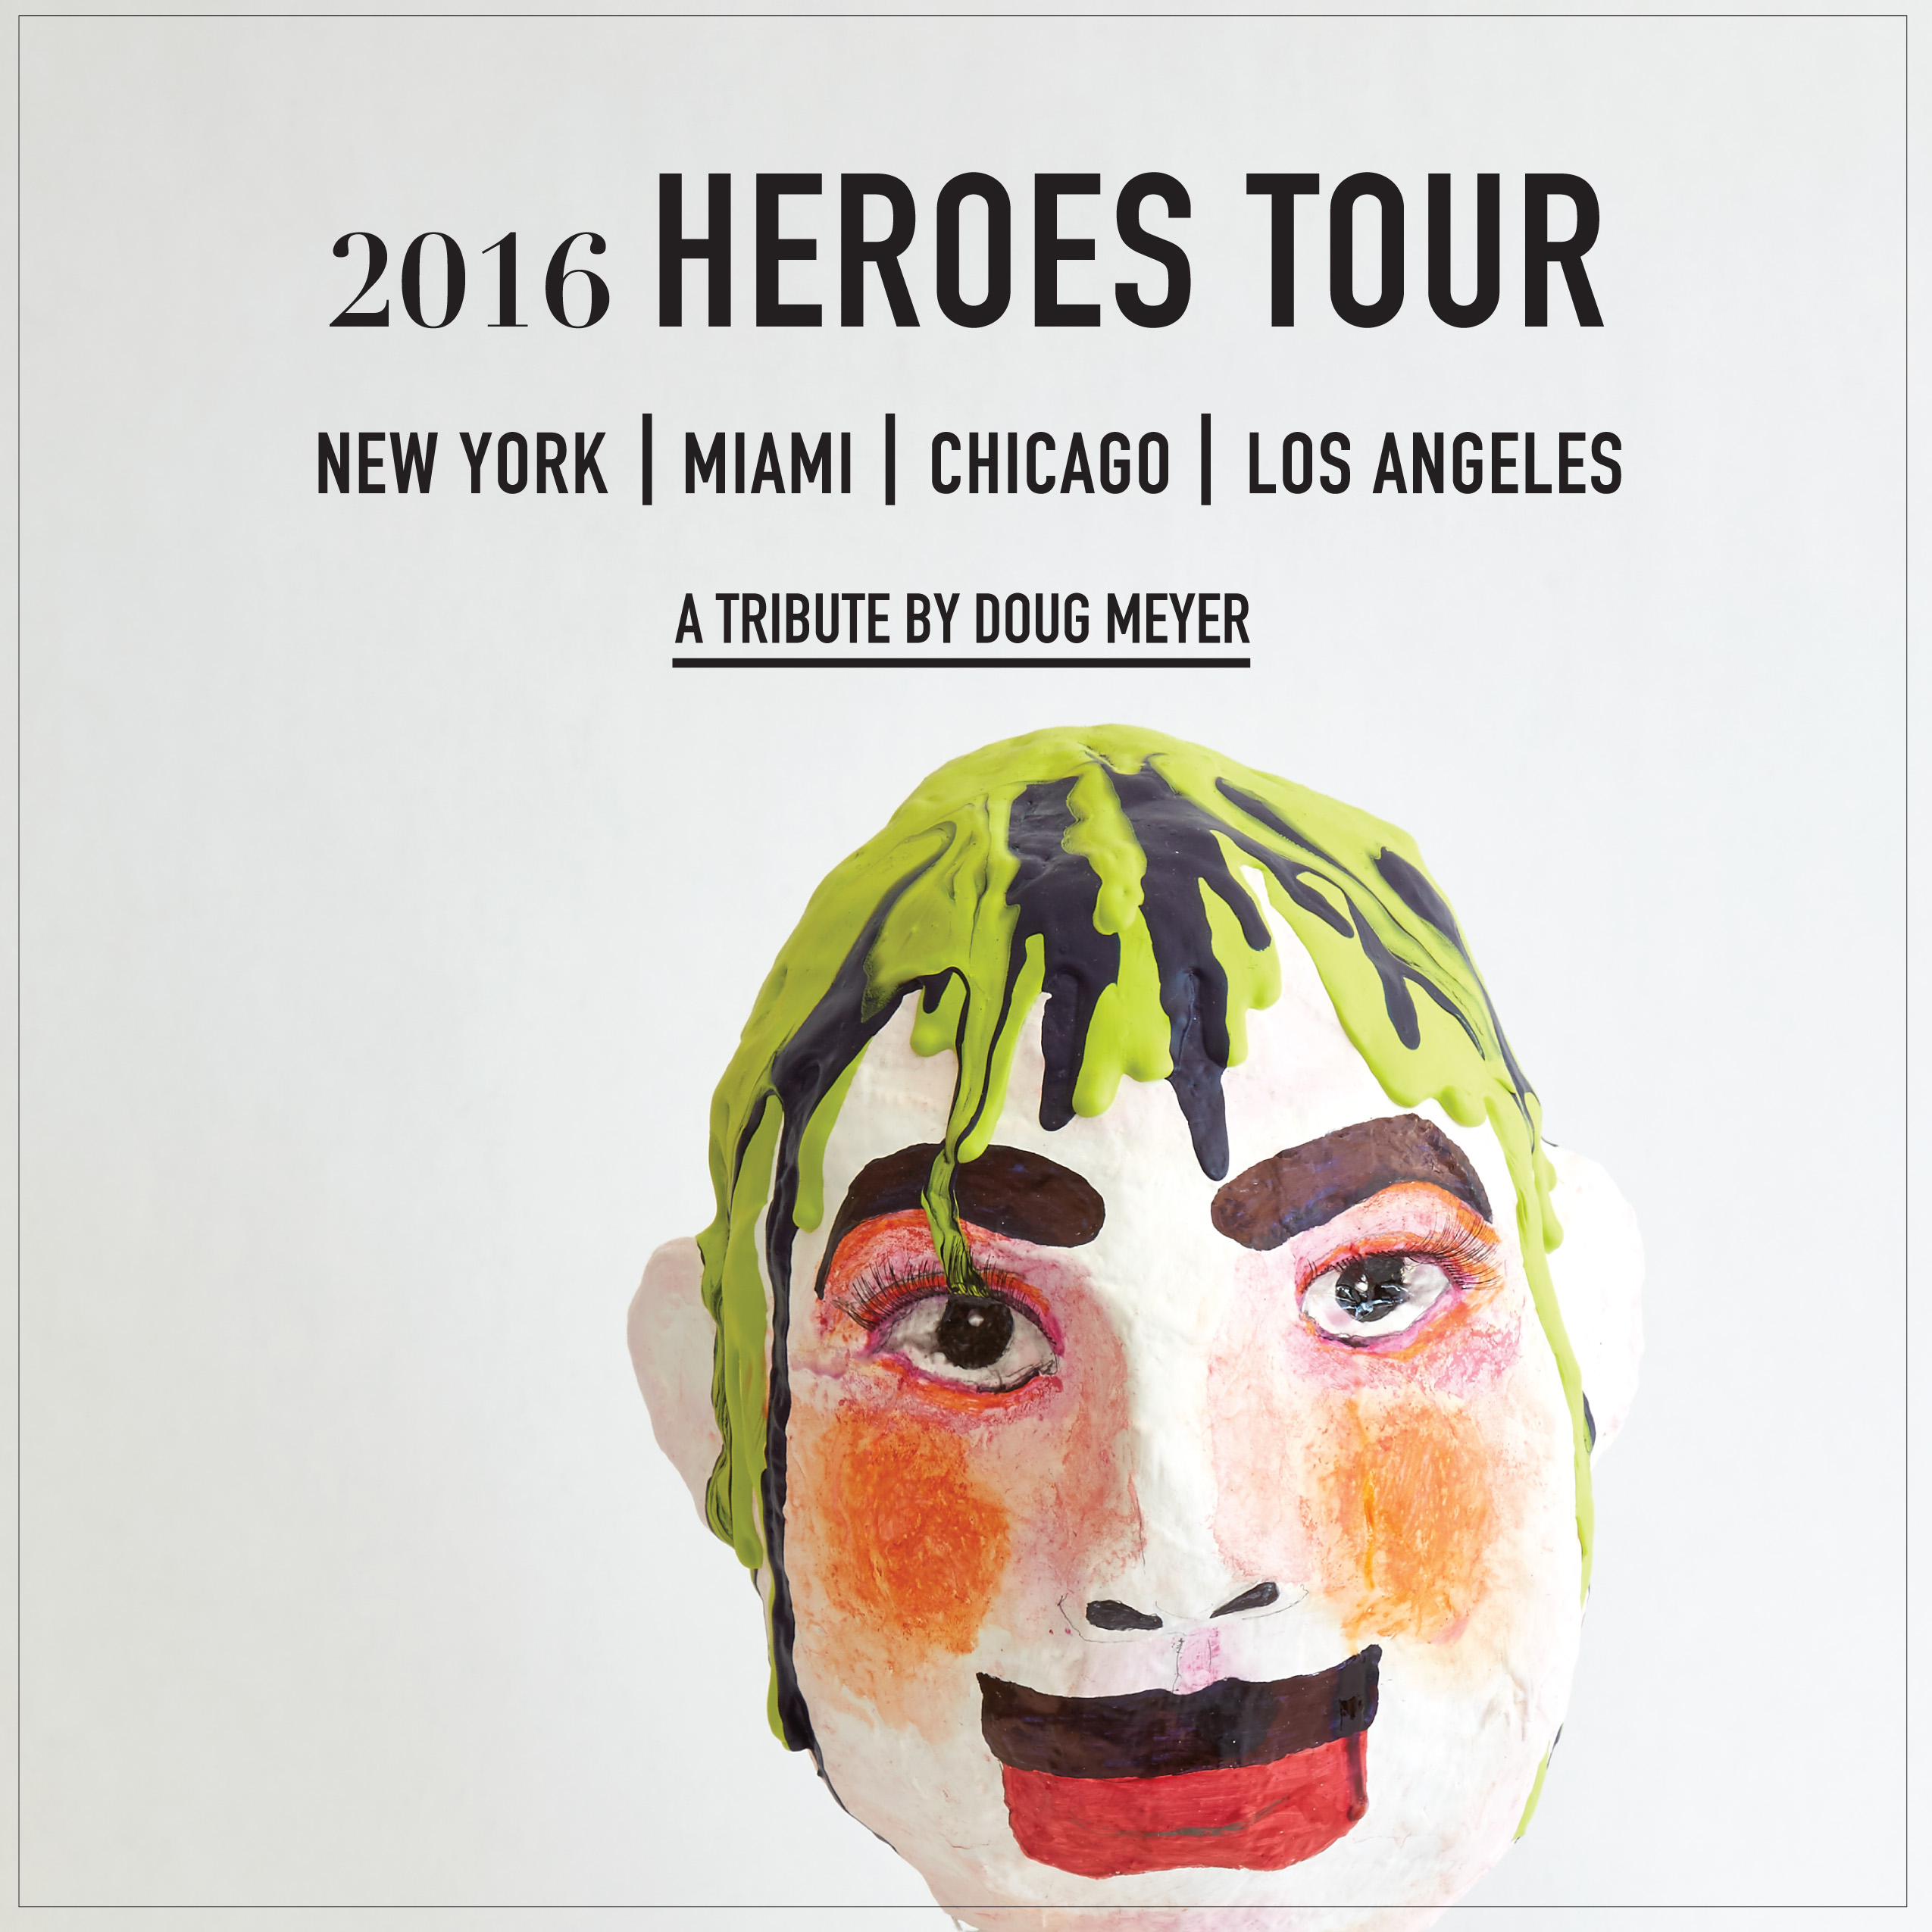 Heroes Tour 2016 A Traveling Exhibition by Doug Meyer  : NASLOVNAheroes tour logoNIBA Homedesign exhibitionMiami FloridaArchi living from www.archi-living.com size 2550 x 2550 jpeg 773kB